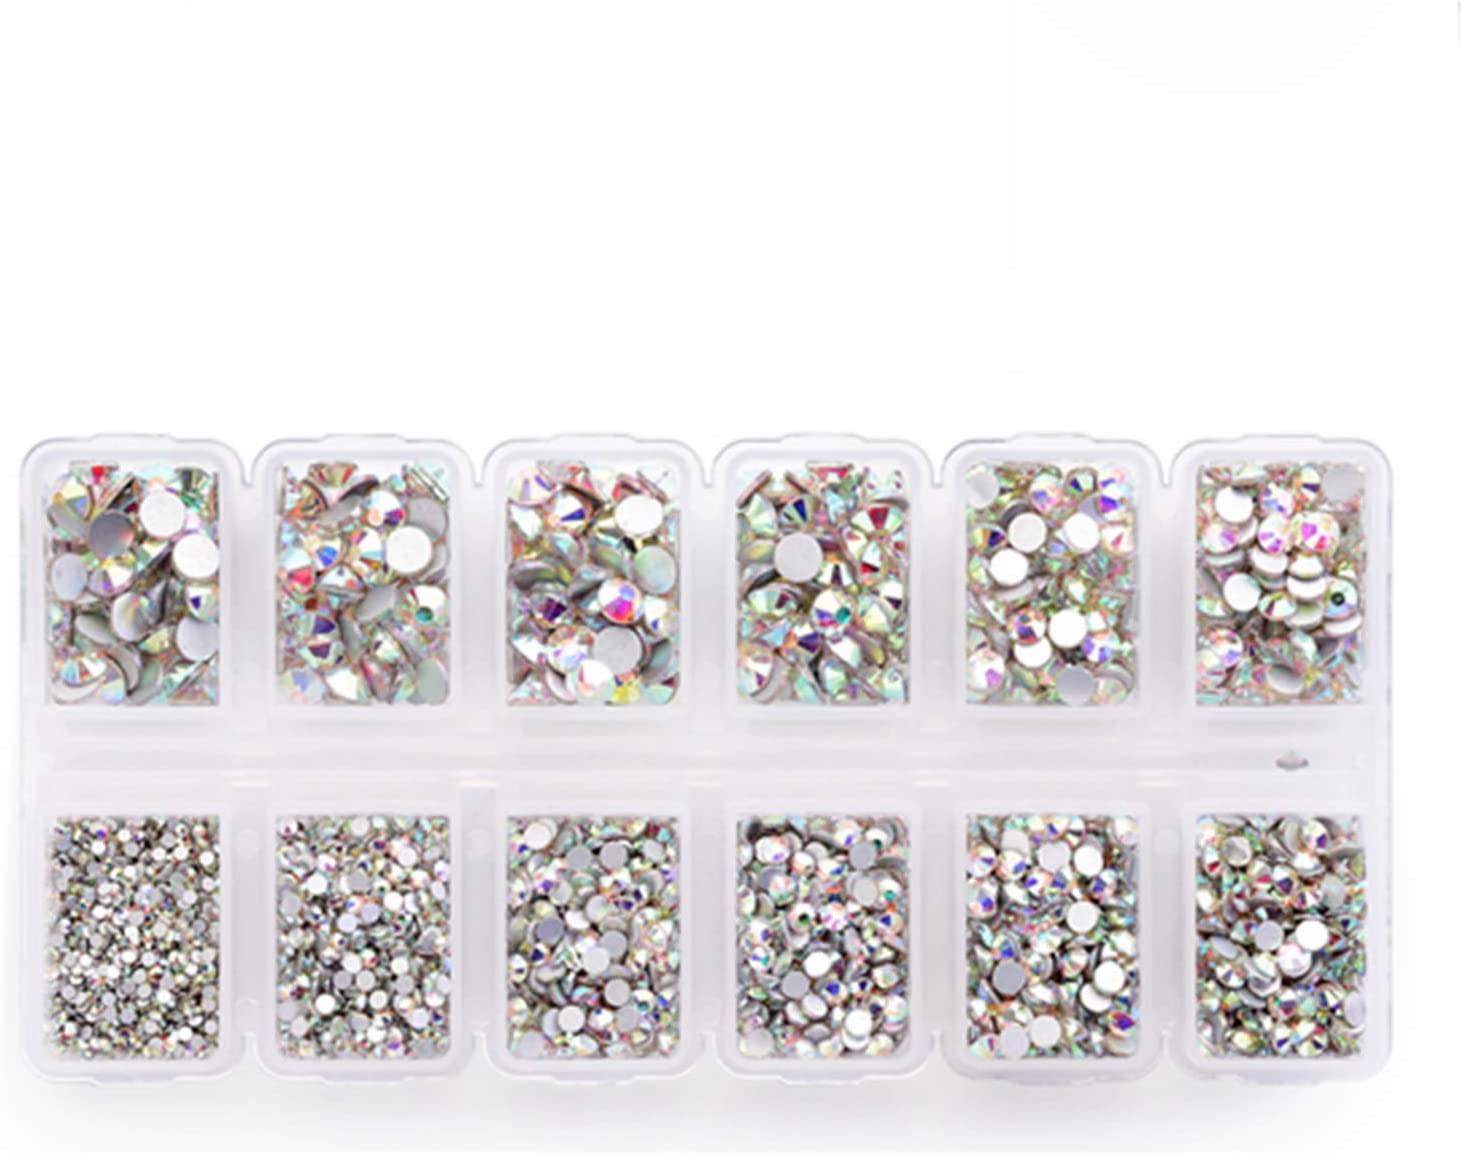 4200 Portland Mall Pieces Flat Back Large-scale sale AB Rhinestones Craft Crystal Ge for Round